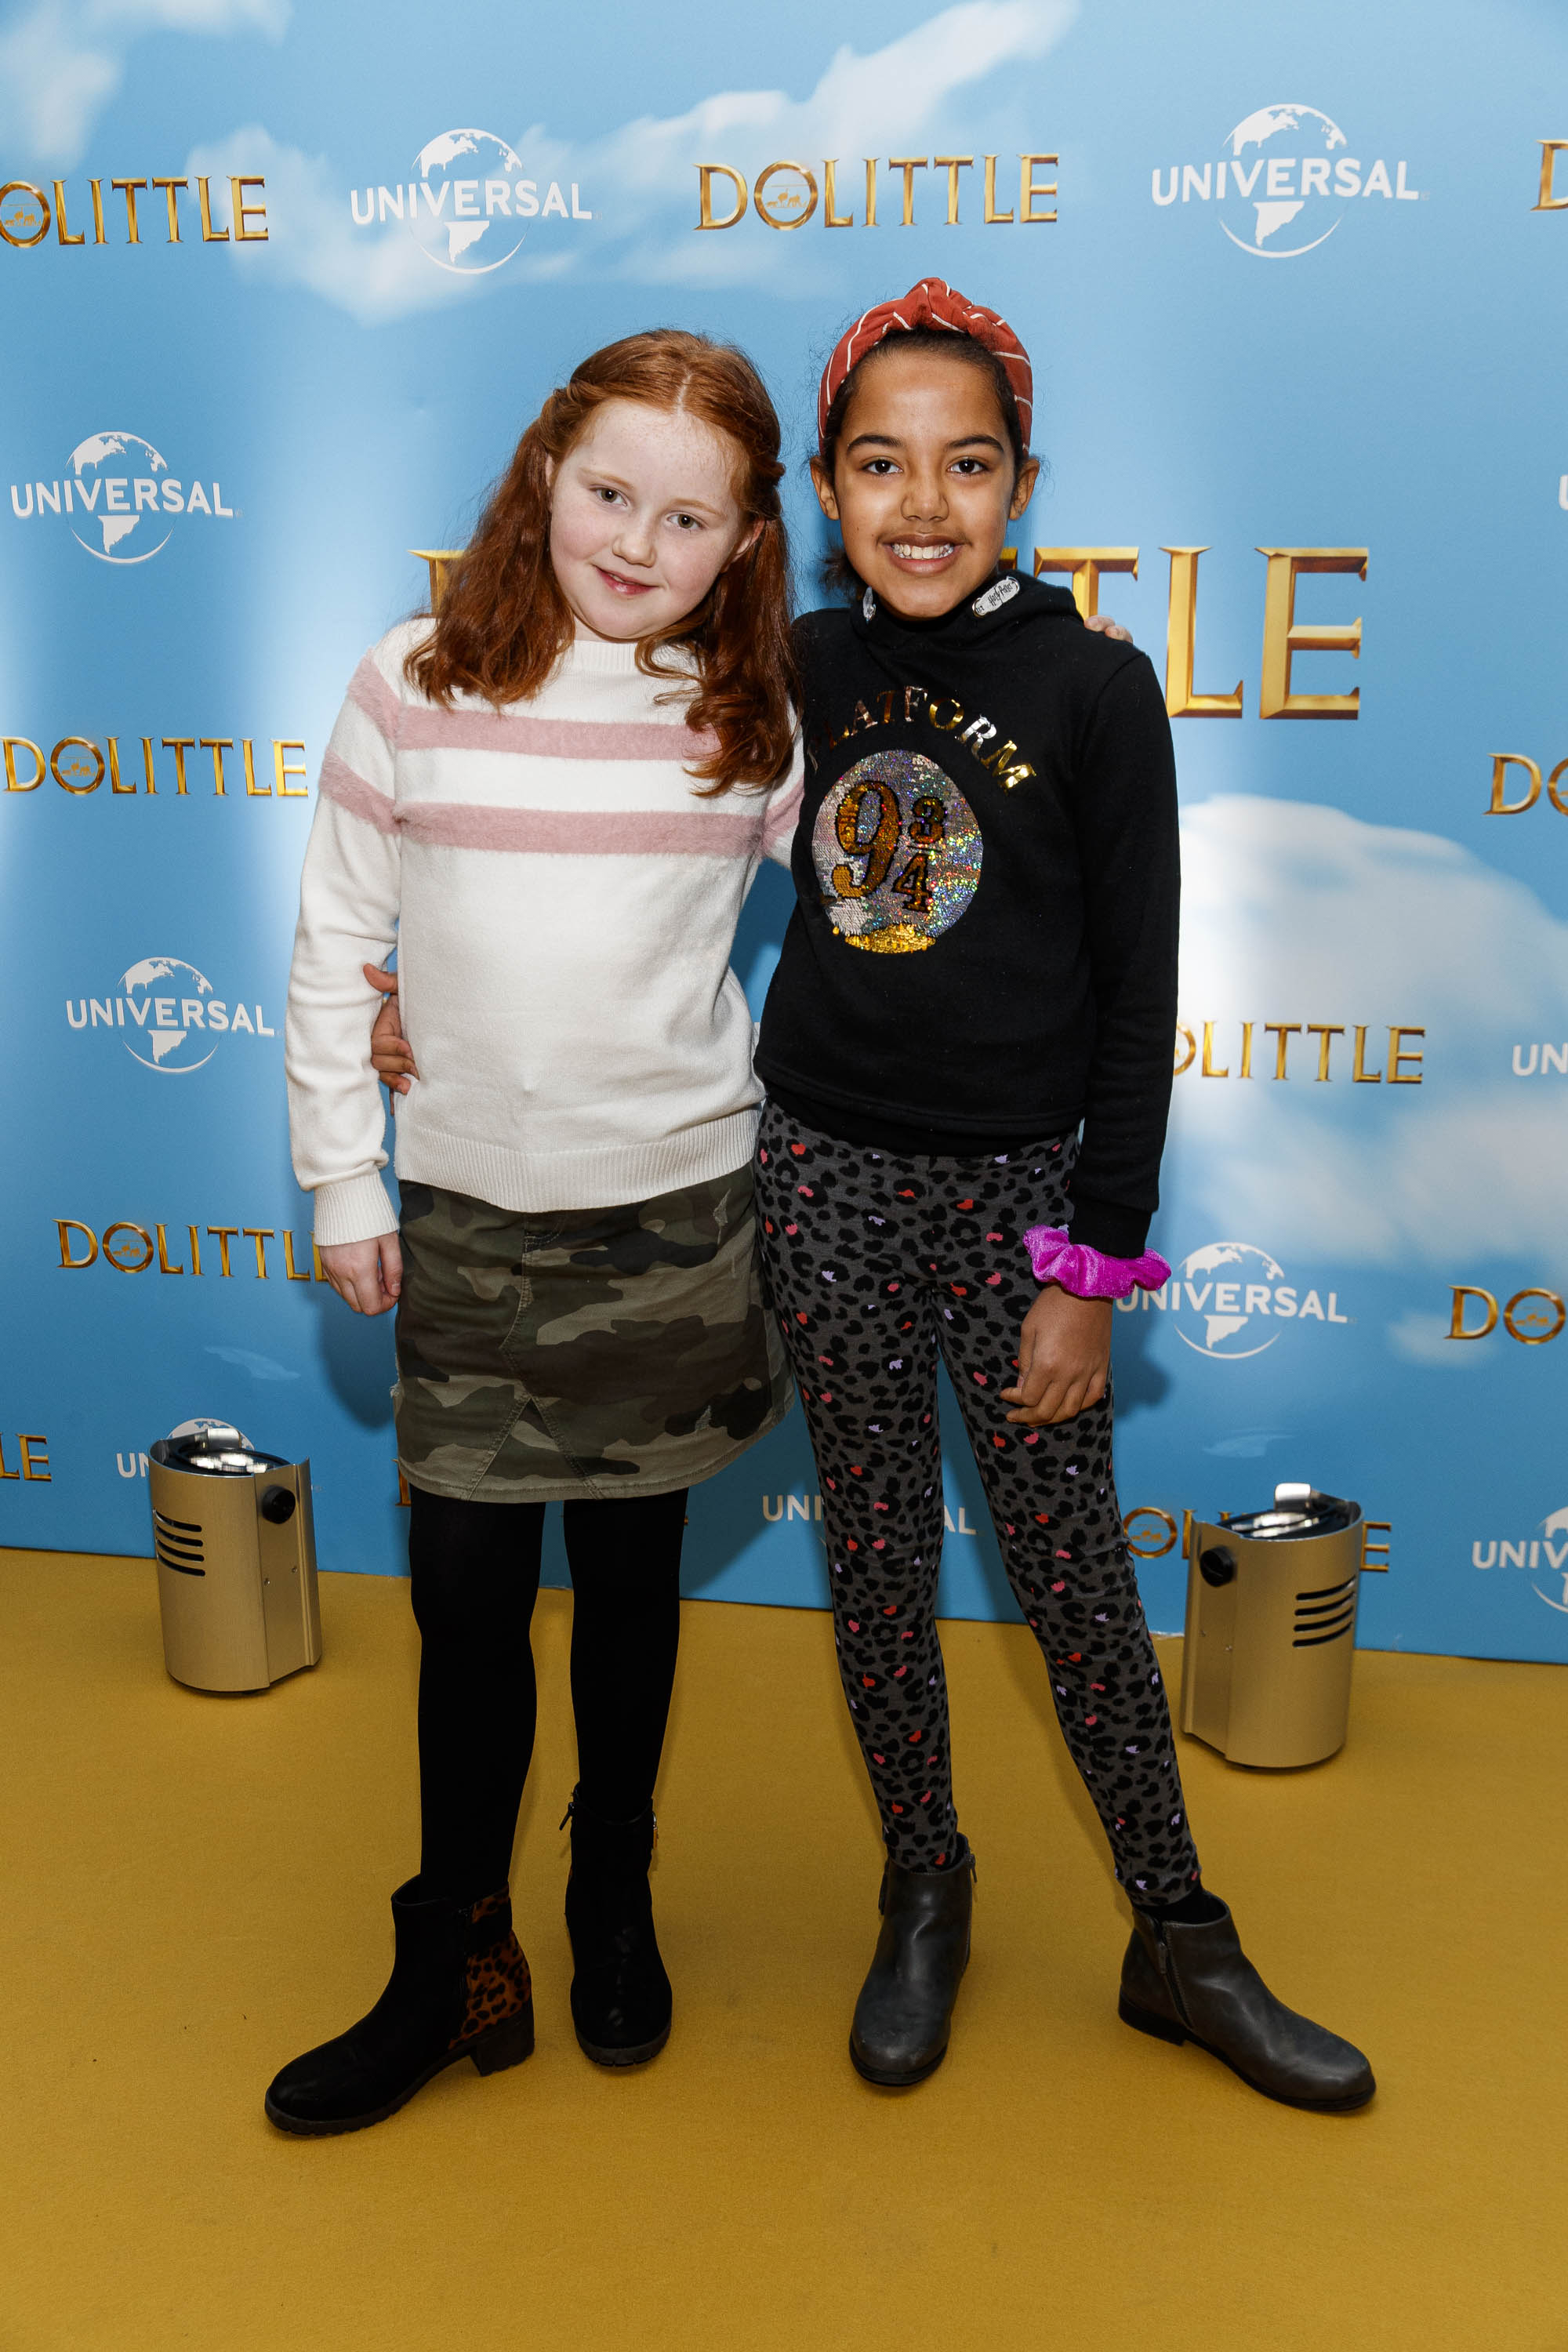 Olivia Allen (10) and Ciara Smith (9) pictured at the Universal Pictures special preview screening of Dolittle at Odeon Point Square, Dublin.